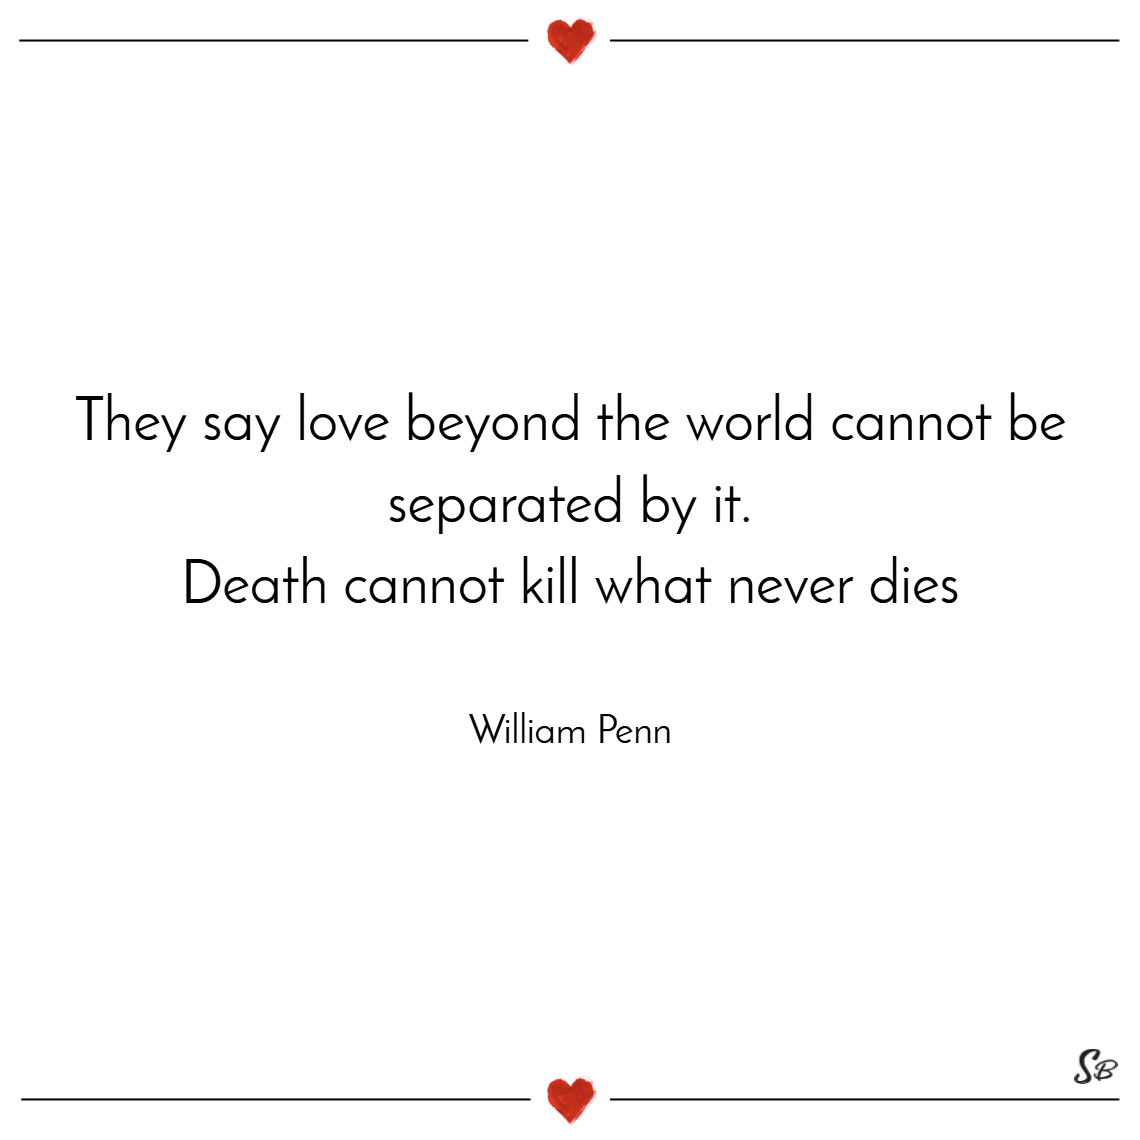 They say love beyond the world cannot be separated by it. death cannot kill what never dies. – william penn